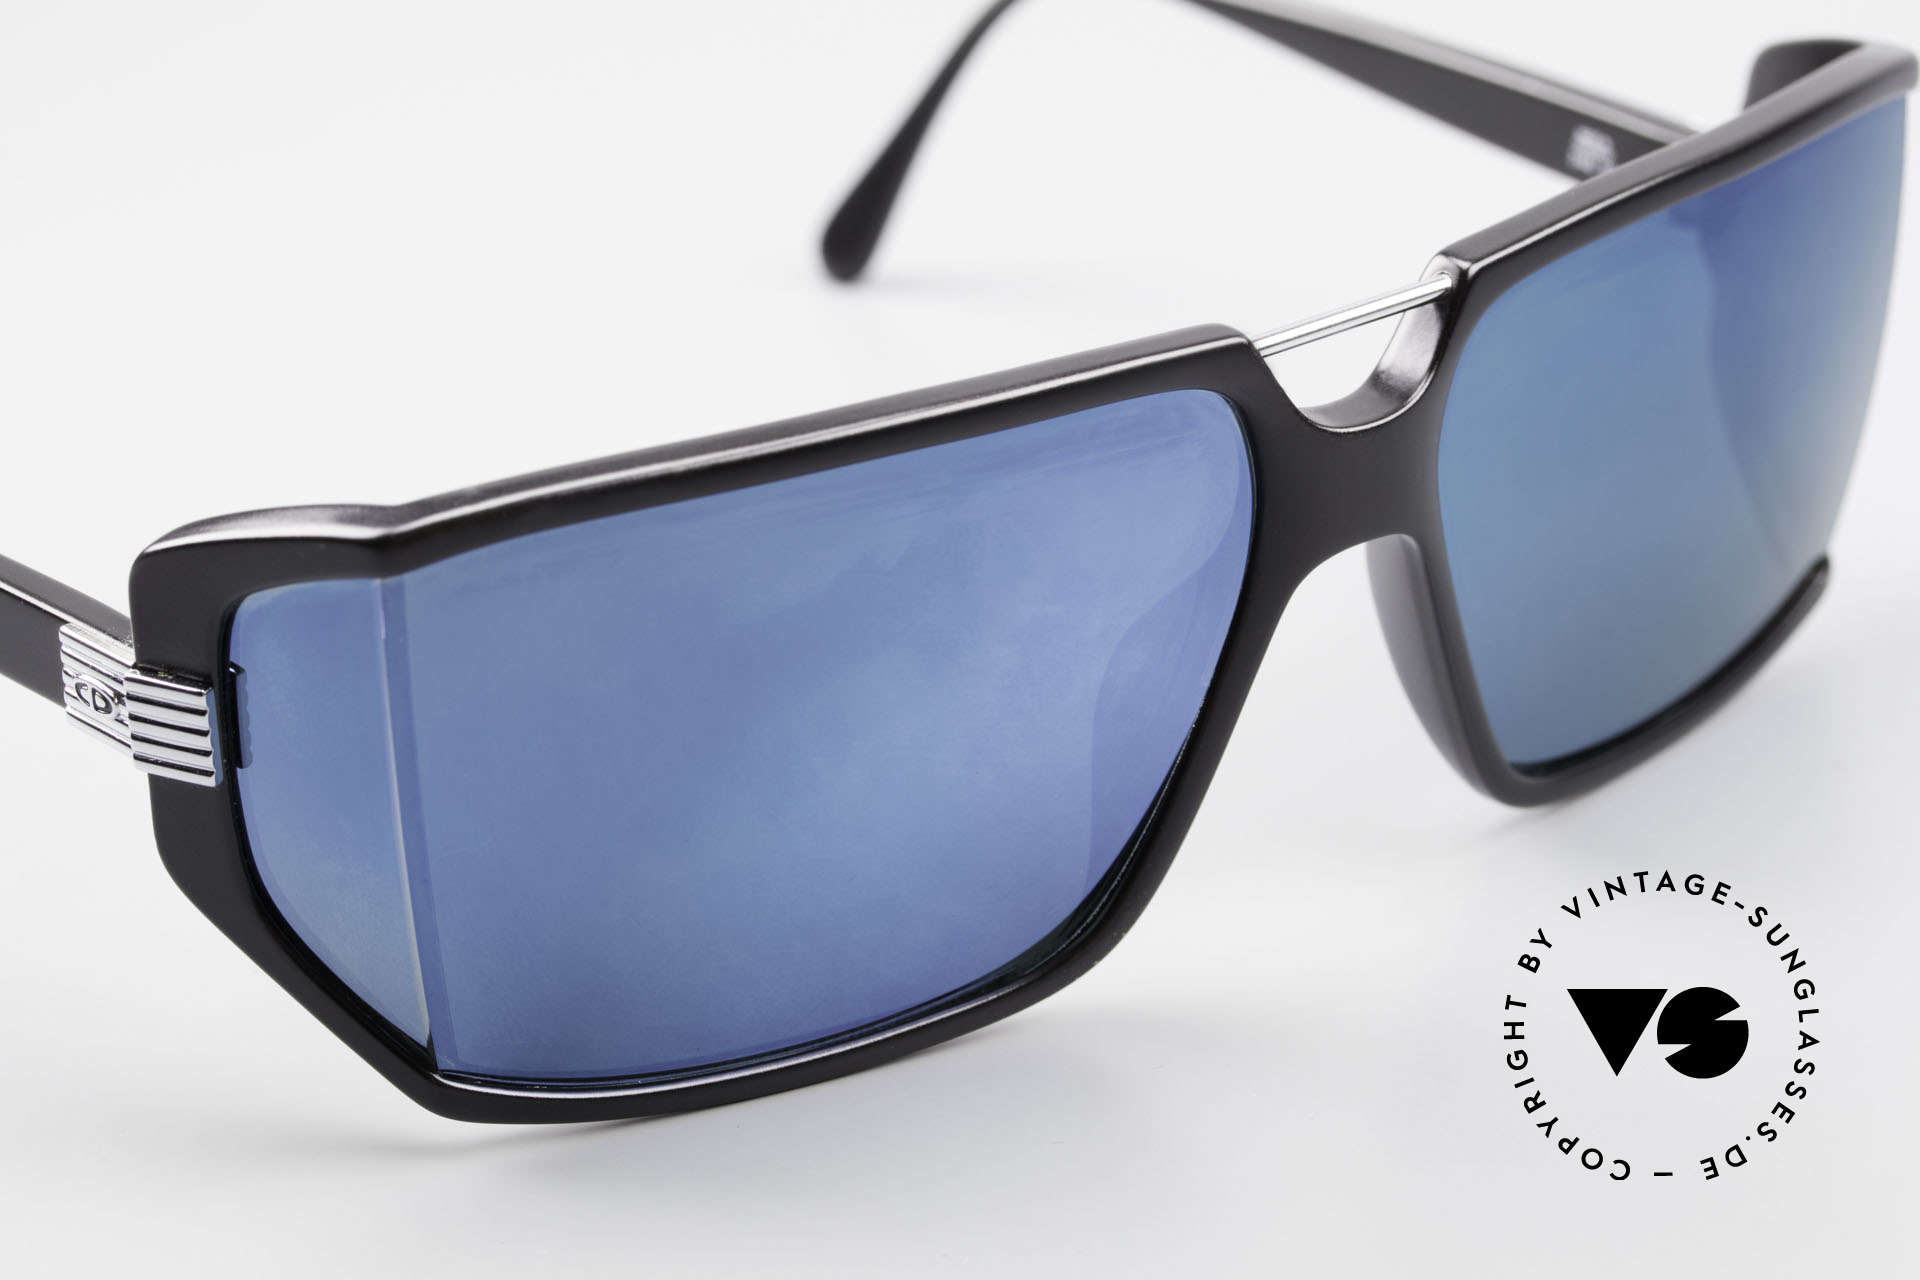 Christian Dior 2440 Monsieur 80's Men's Shades, stylish shades of the legendary Dior Monsieur Series, Made for Men